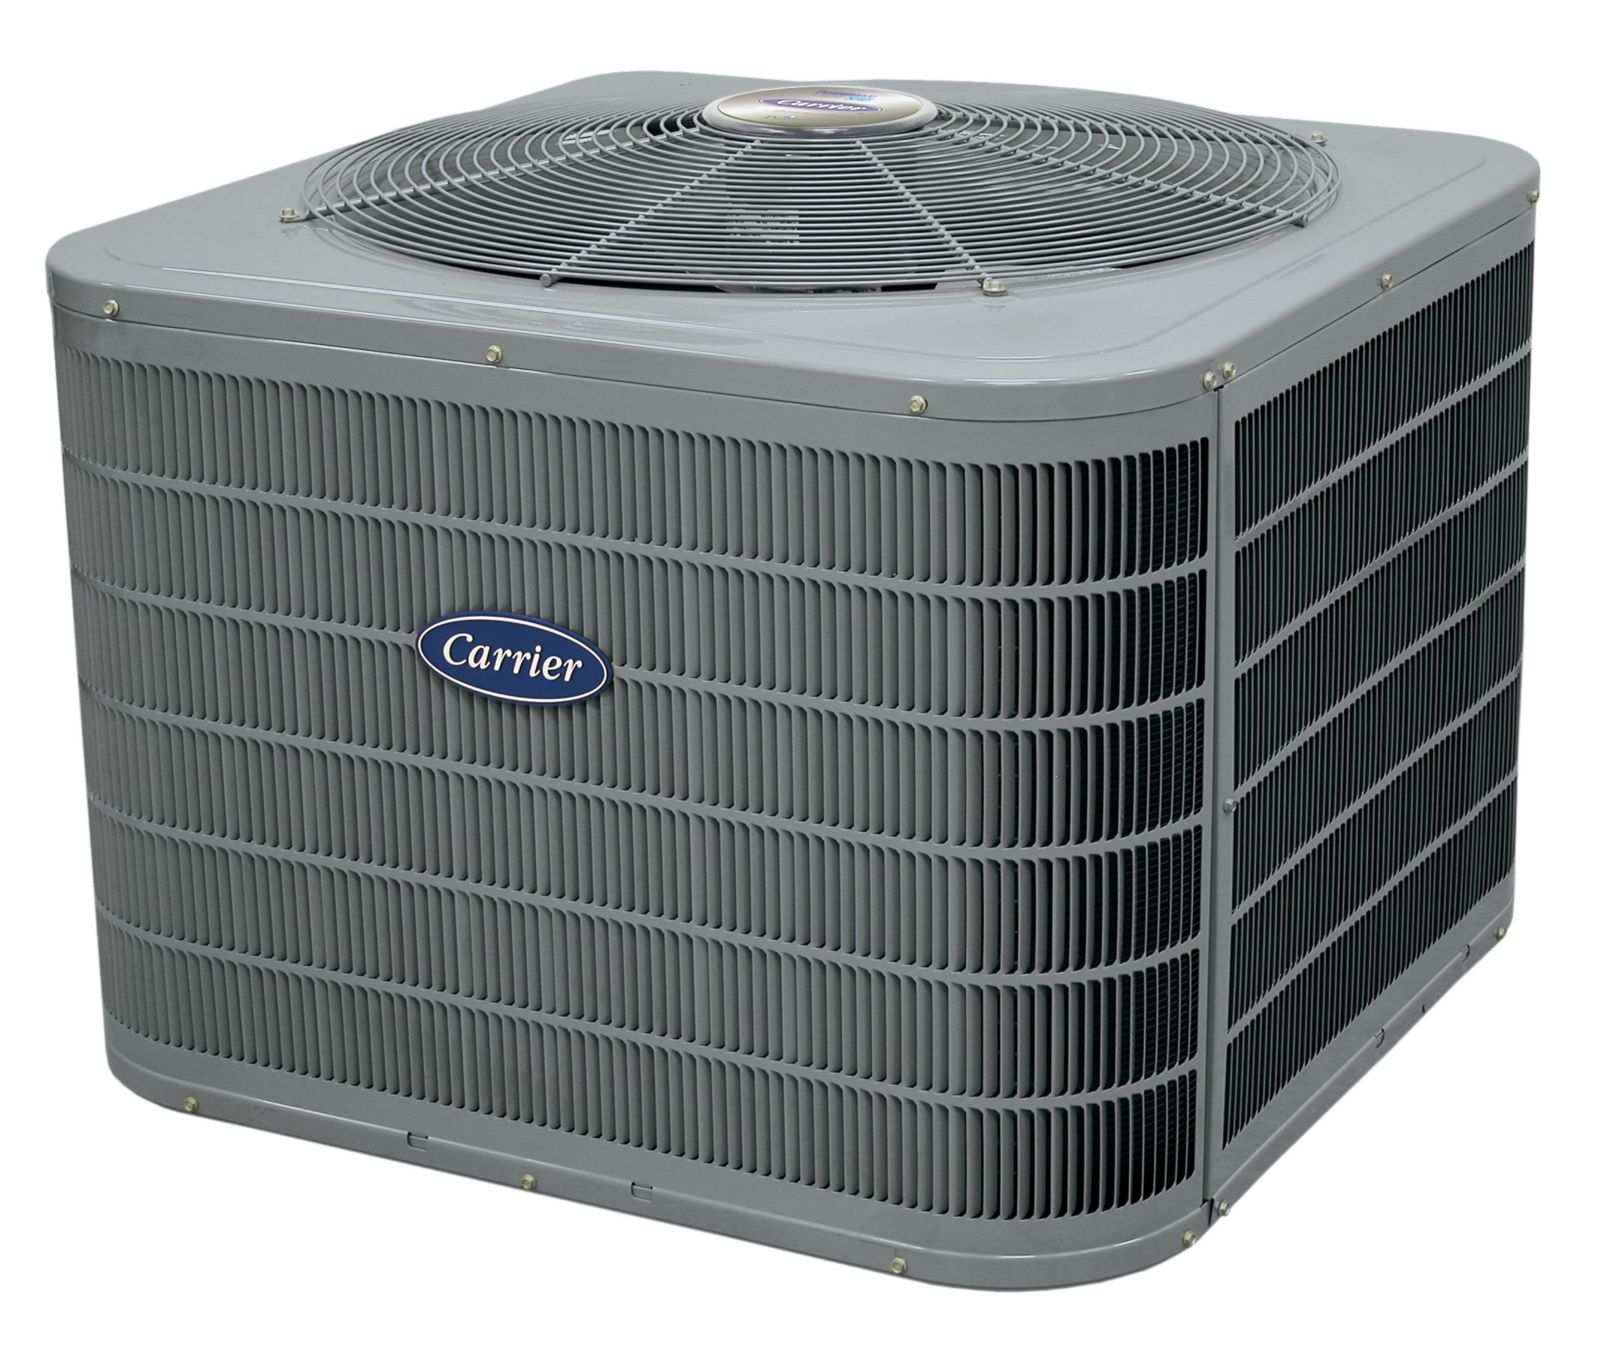 Carrier 24acc Carrier Performance 3 Ton 16 Seer Air Conditioner